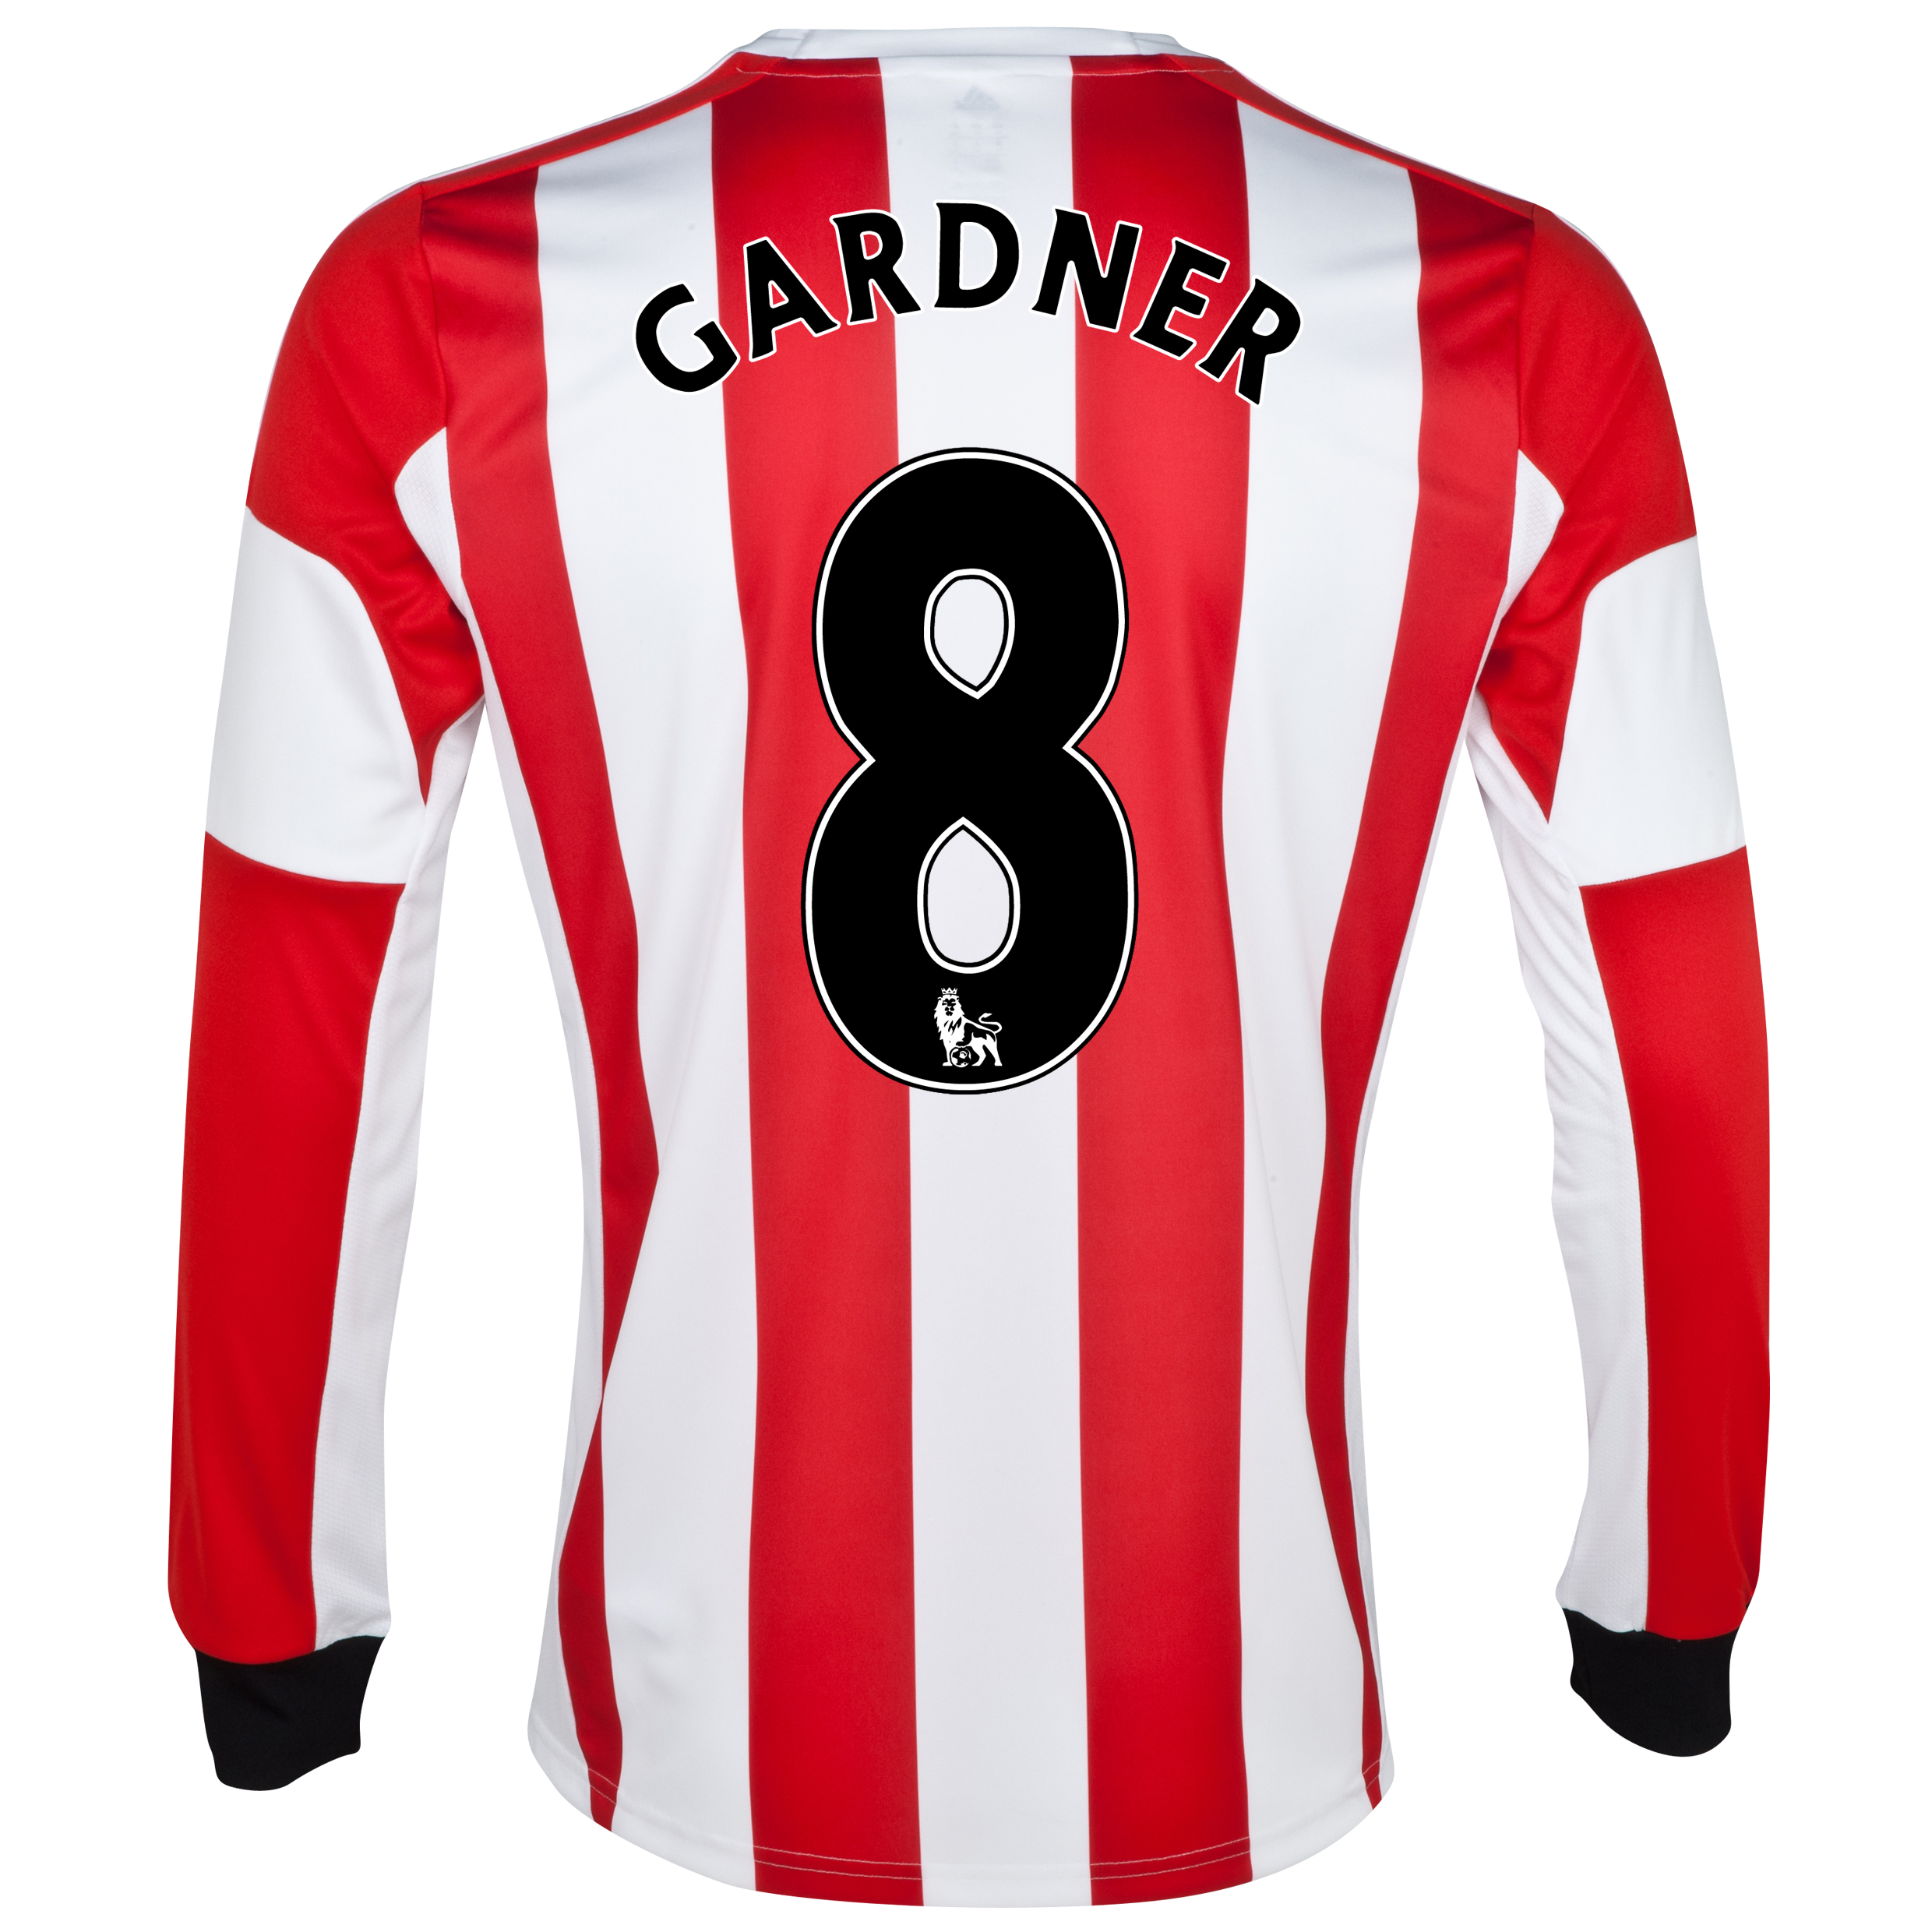 Sunderland Home Shirt 2013/14 - Long Sleeved  with Gardner 8 printing